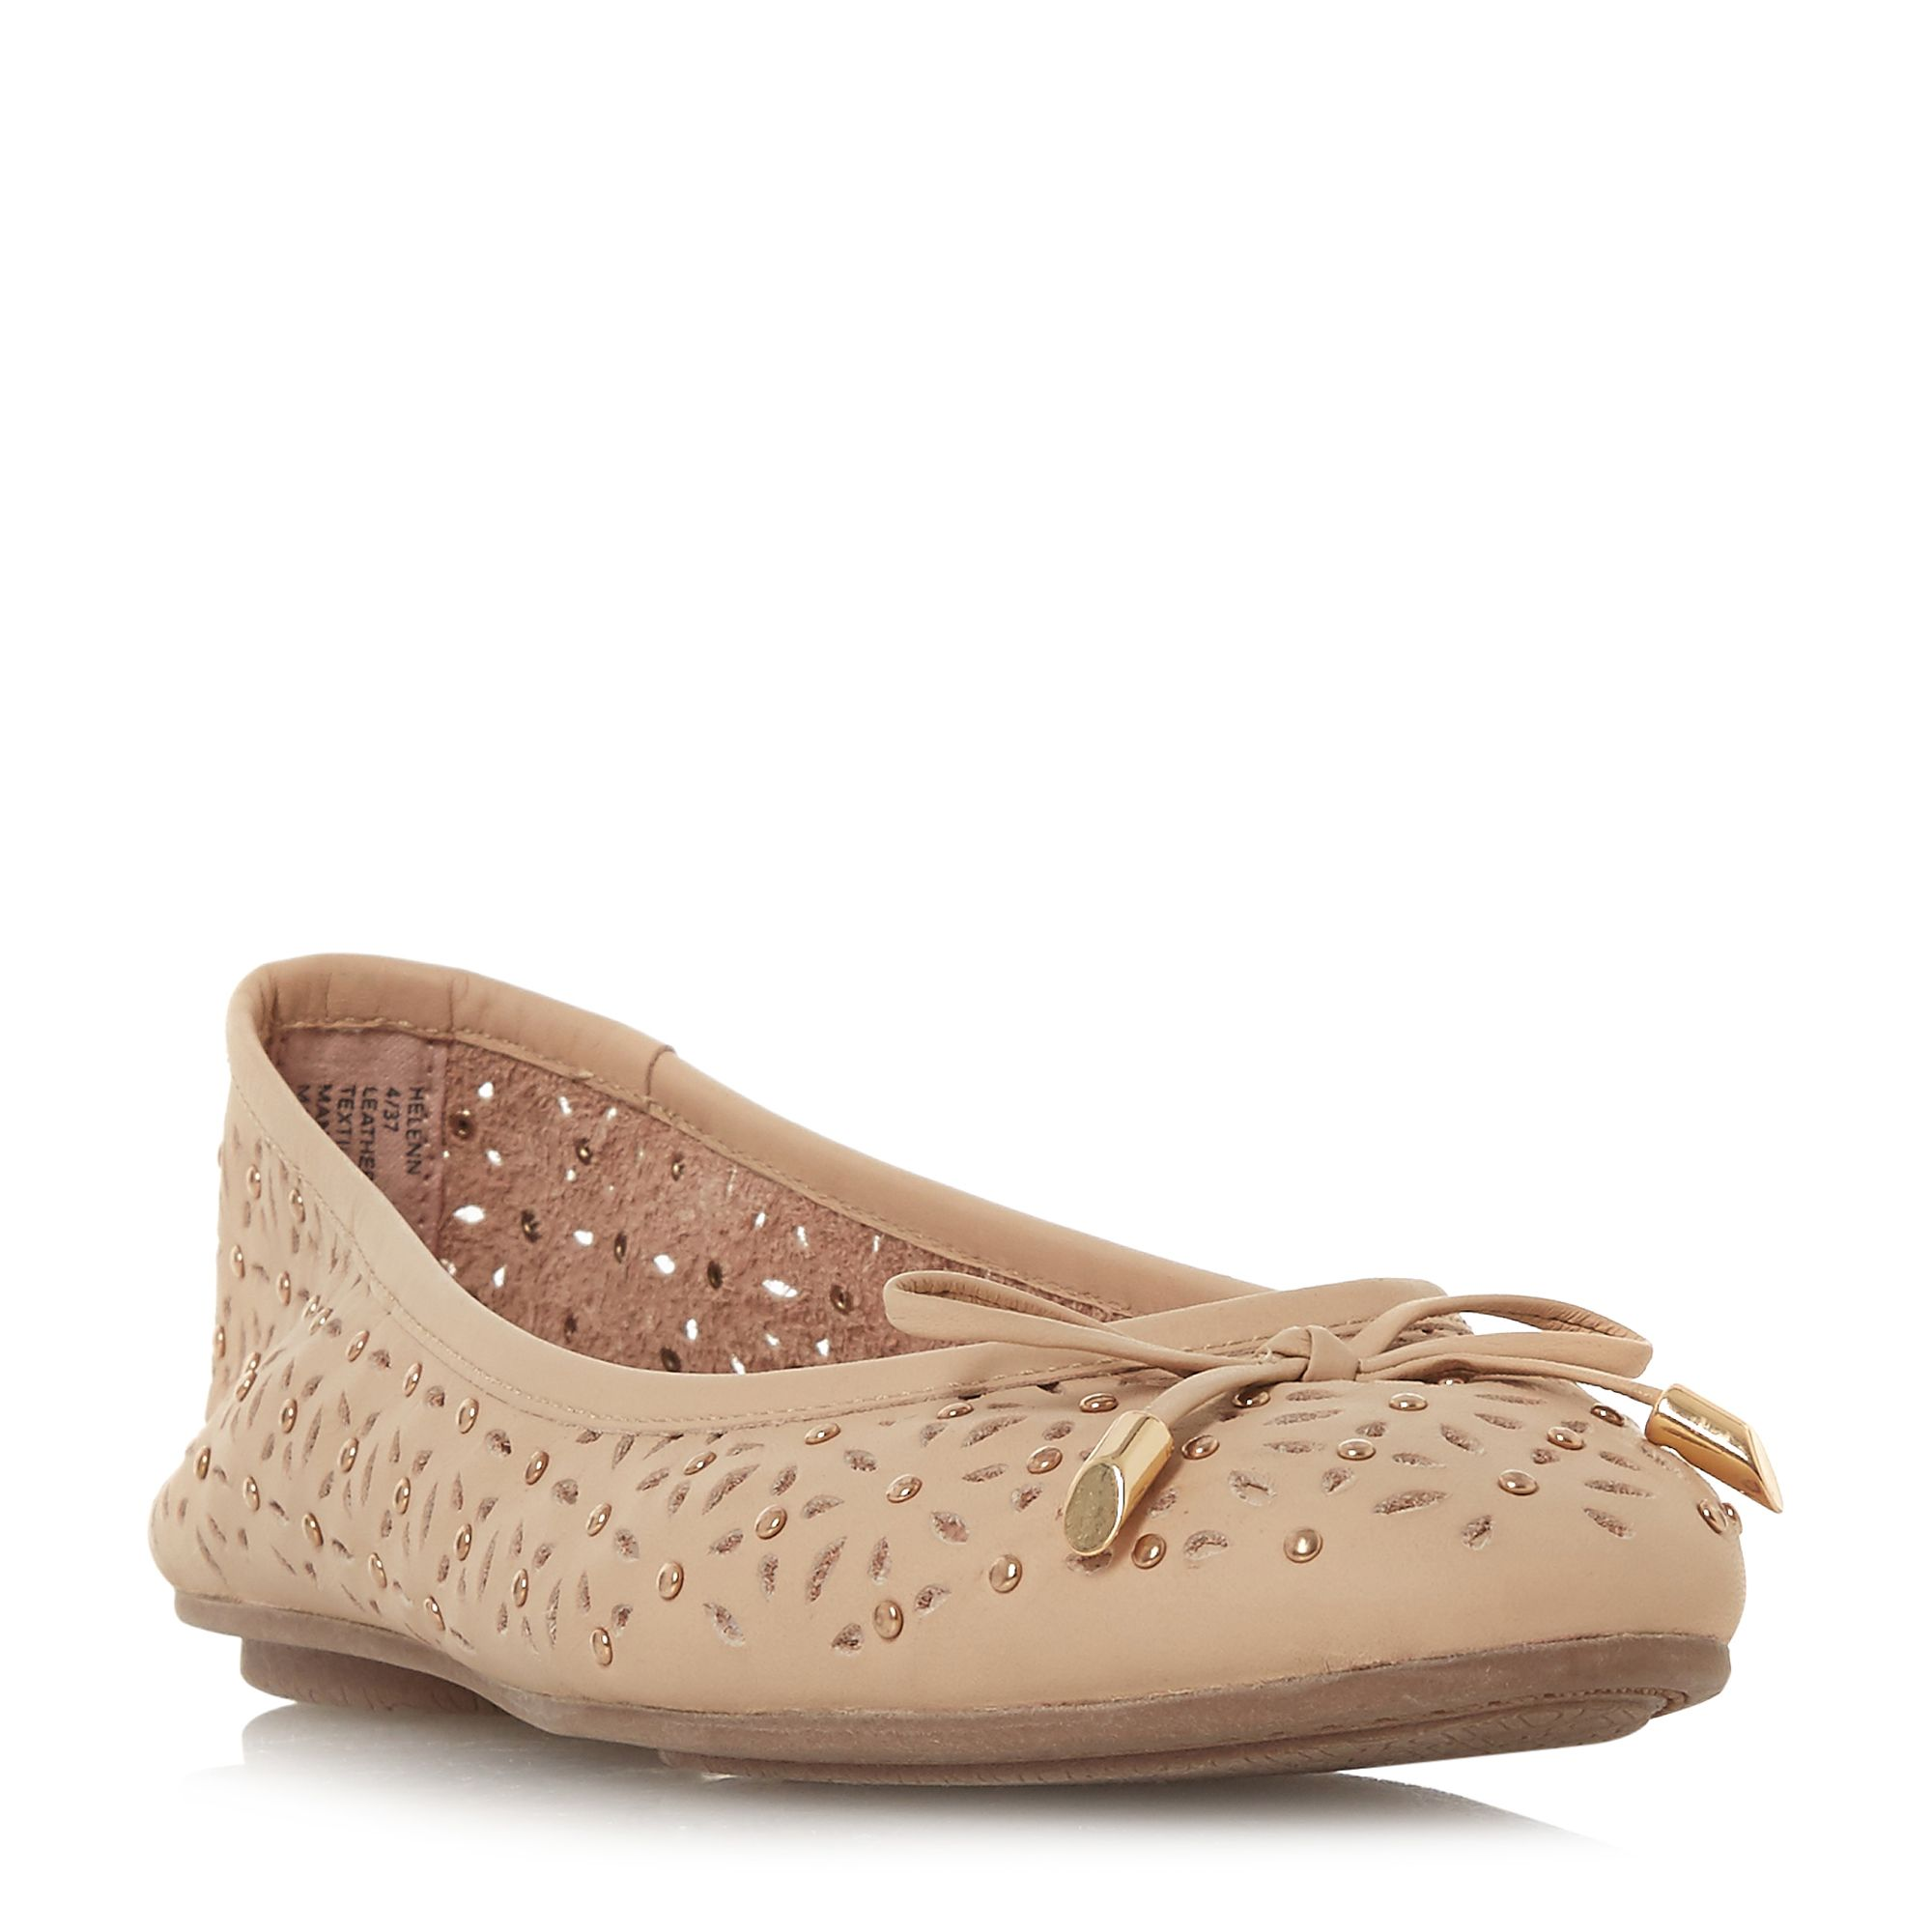 Dune Helenn Floral Laser Cut Ballet Pump Shoes, Nude